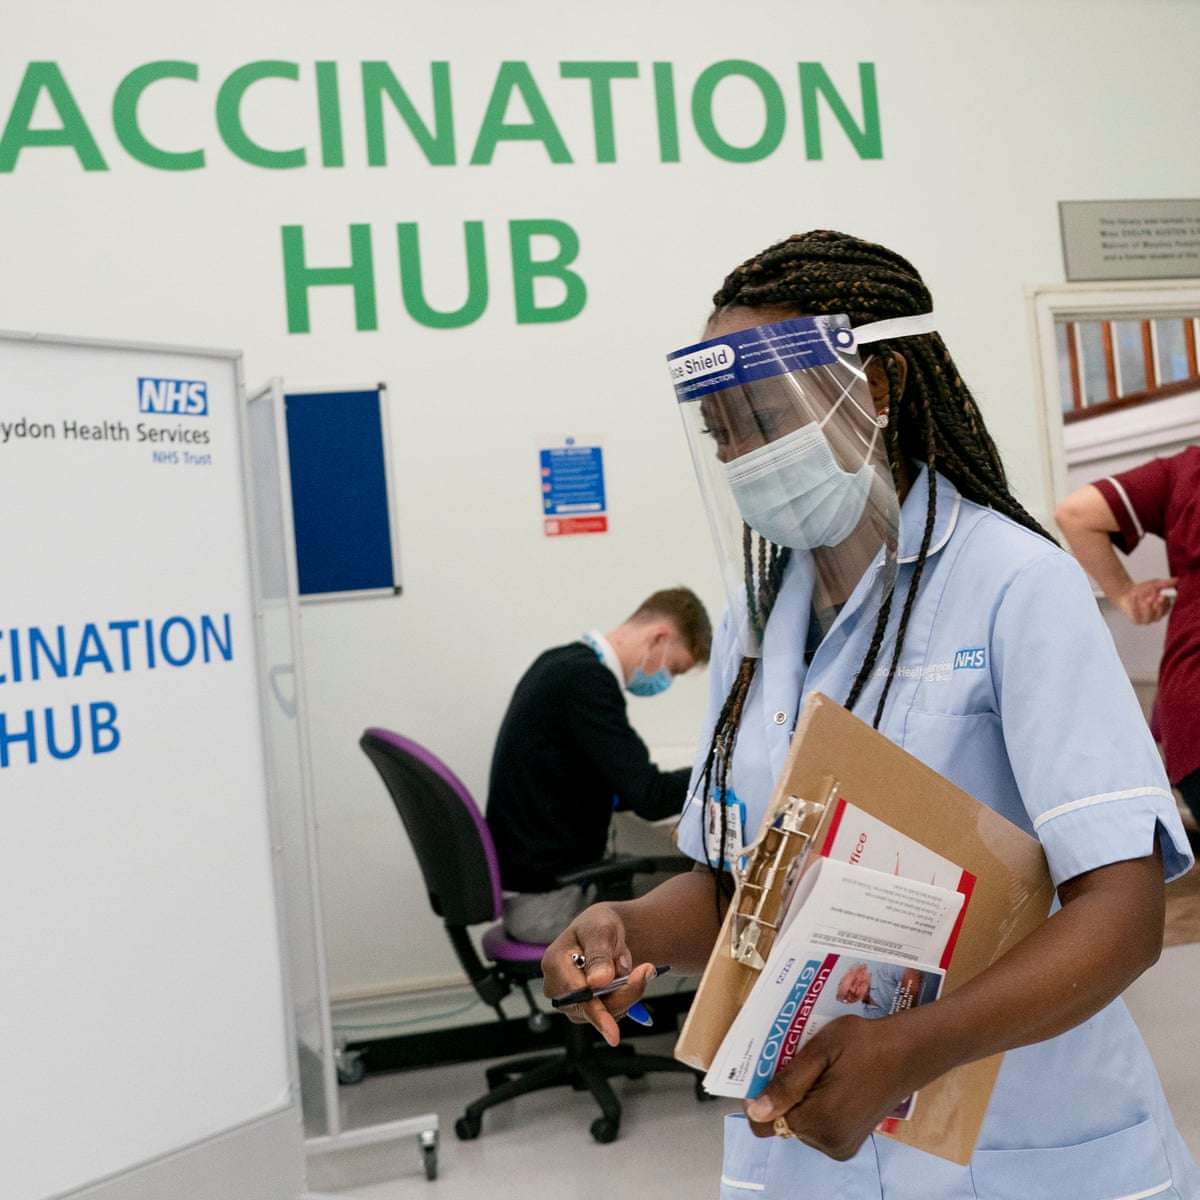 NHS told not to give Covid vaccine